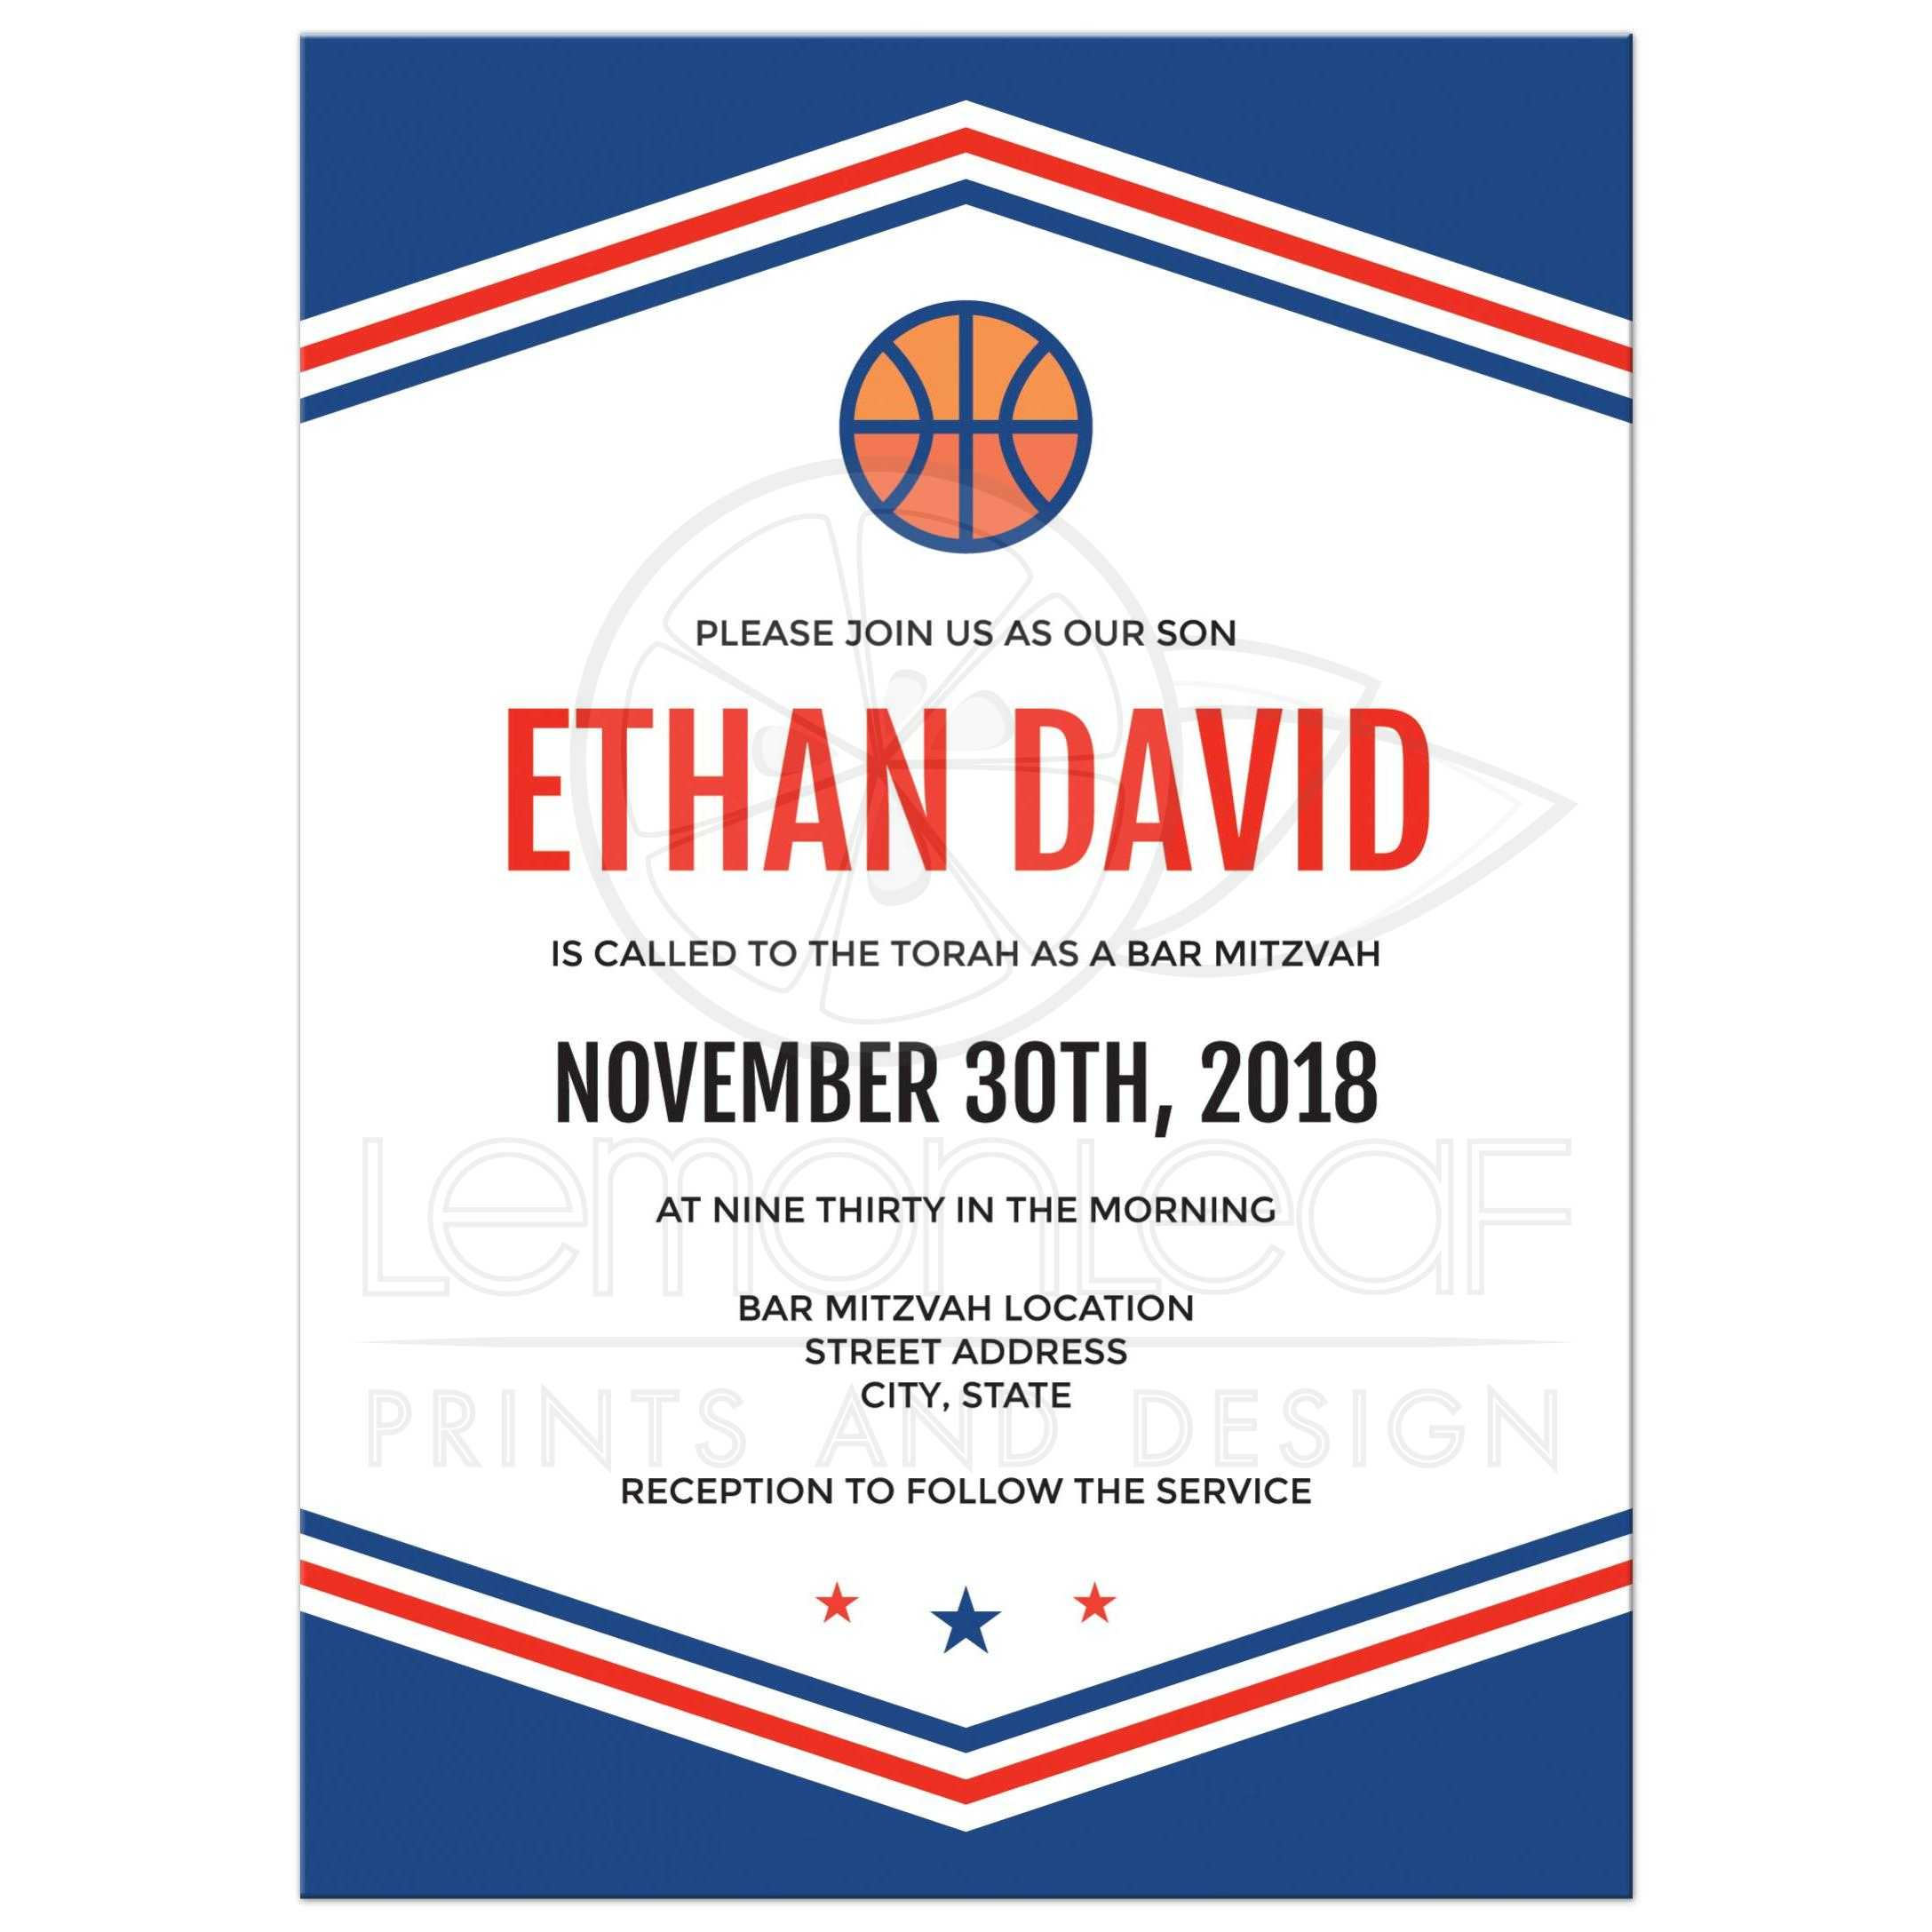 Basketball bar mitzvah invitations with basketball logo red and blue basketball bar mitzvah invitation with red and blue borders solutioingenieria Gallery